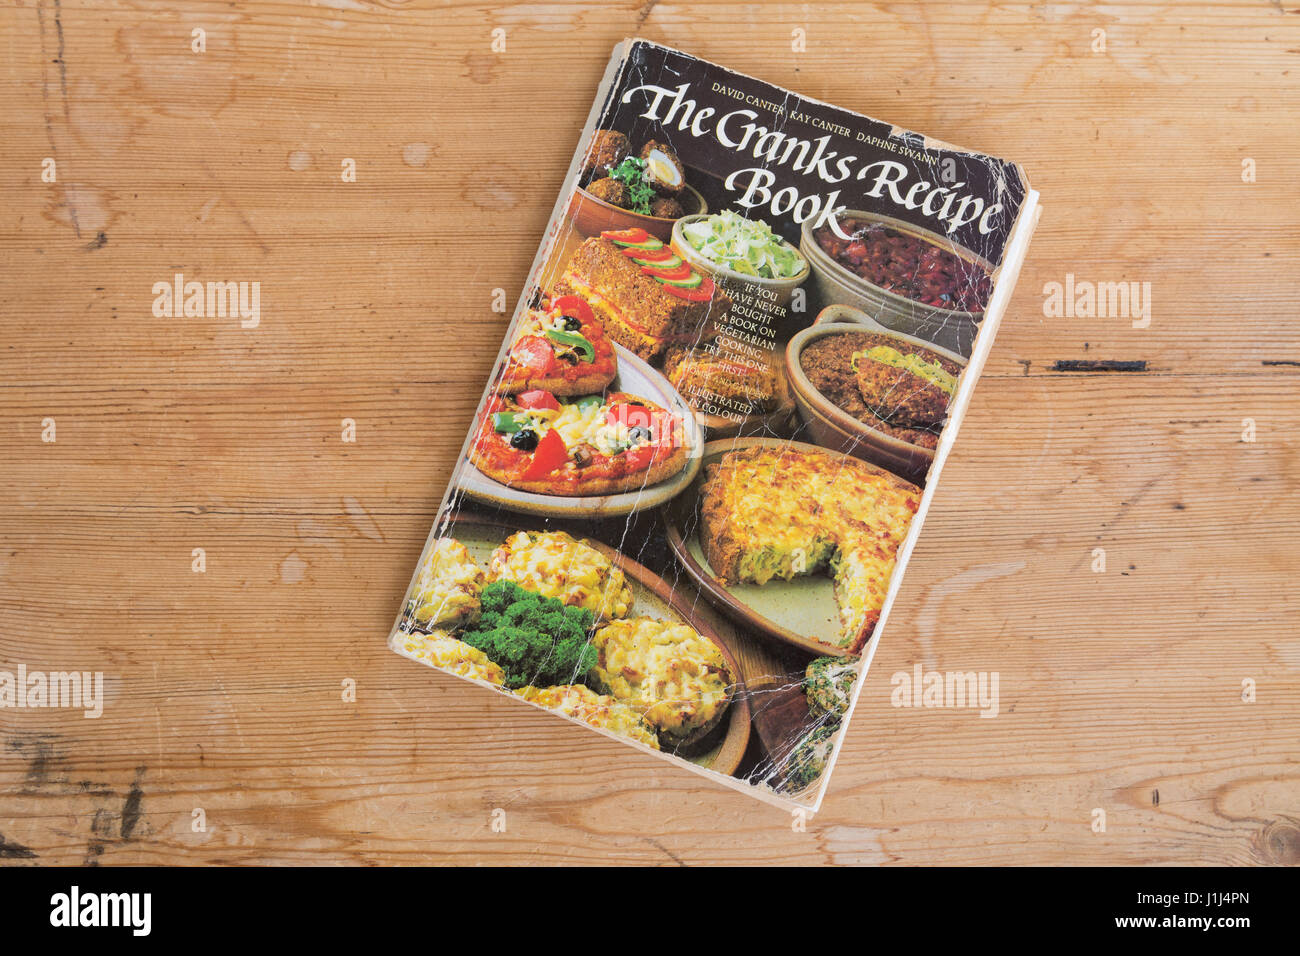 Cranks Recipe Cookery Book - Stock Image